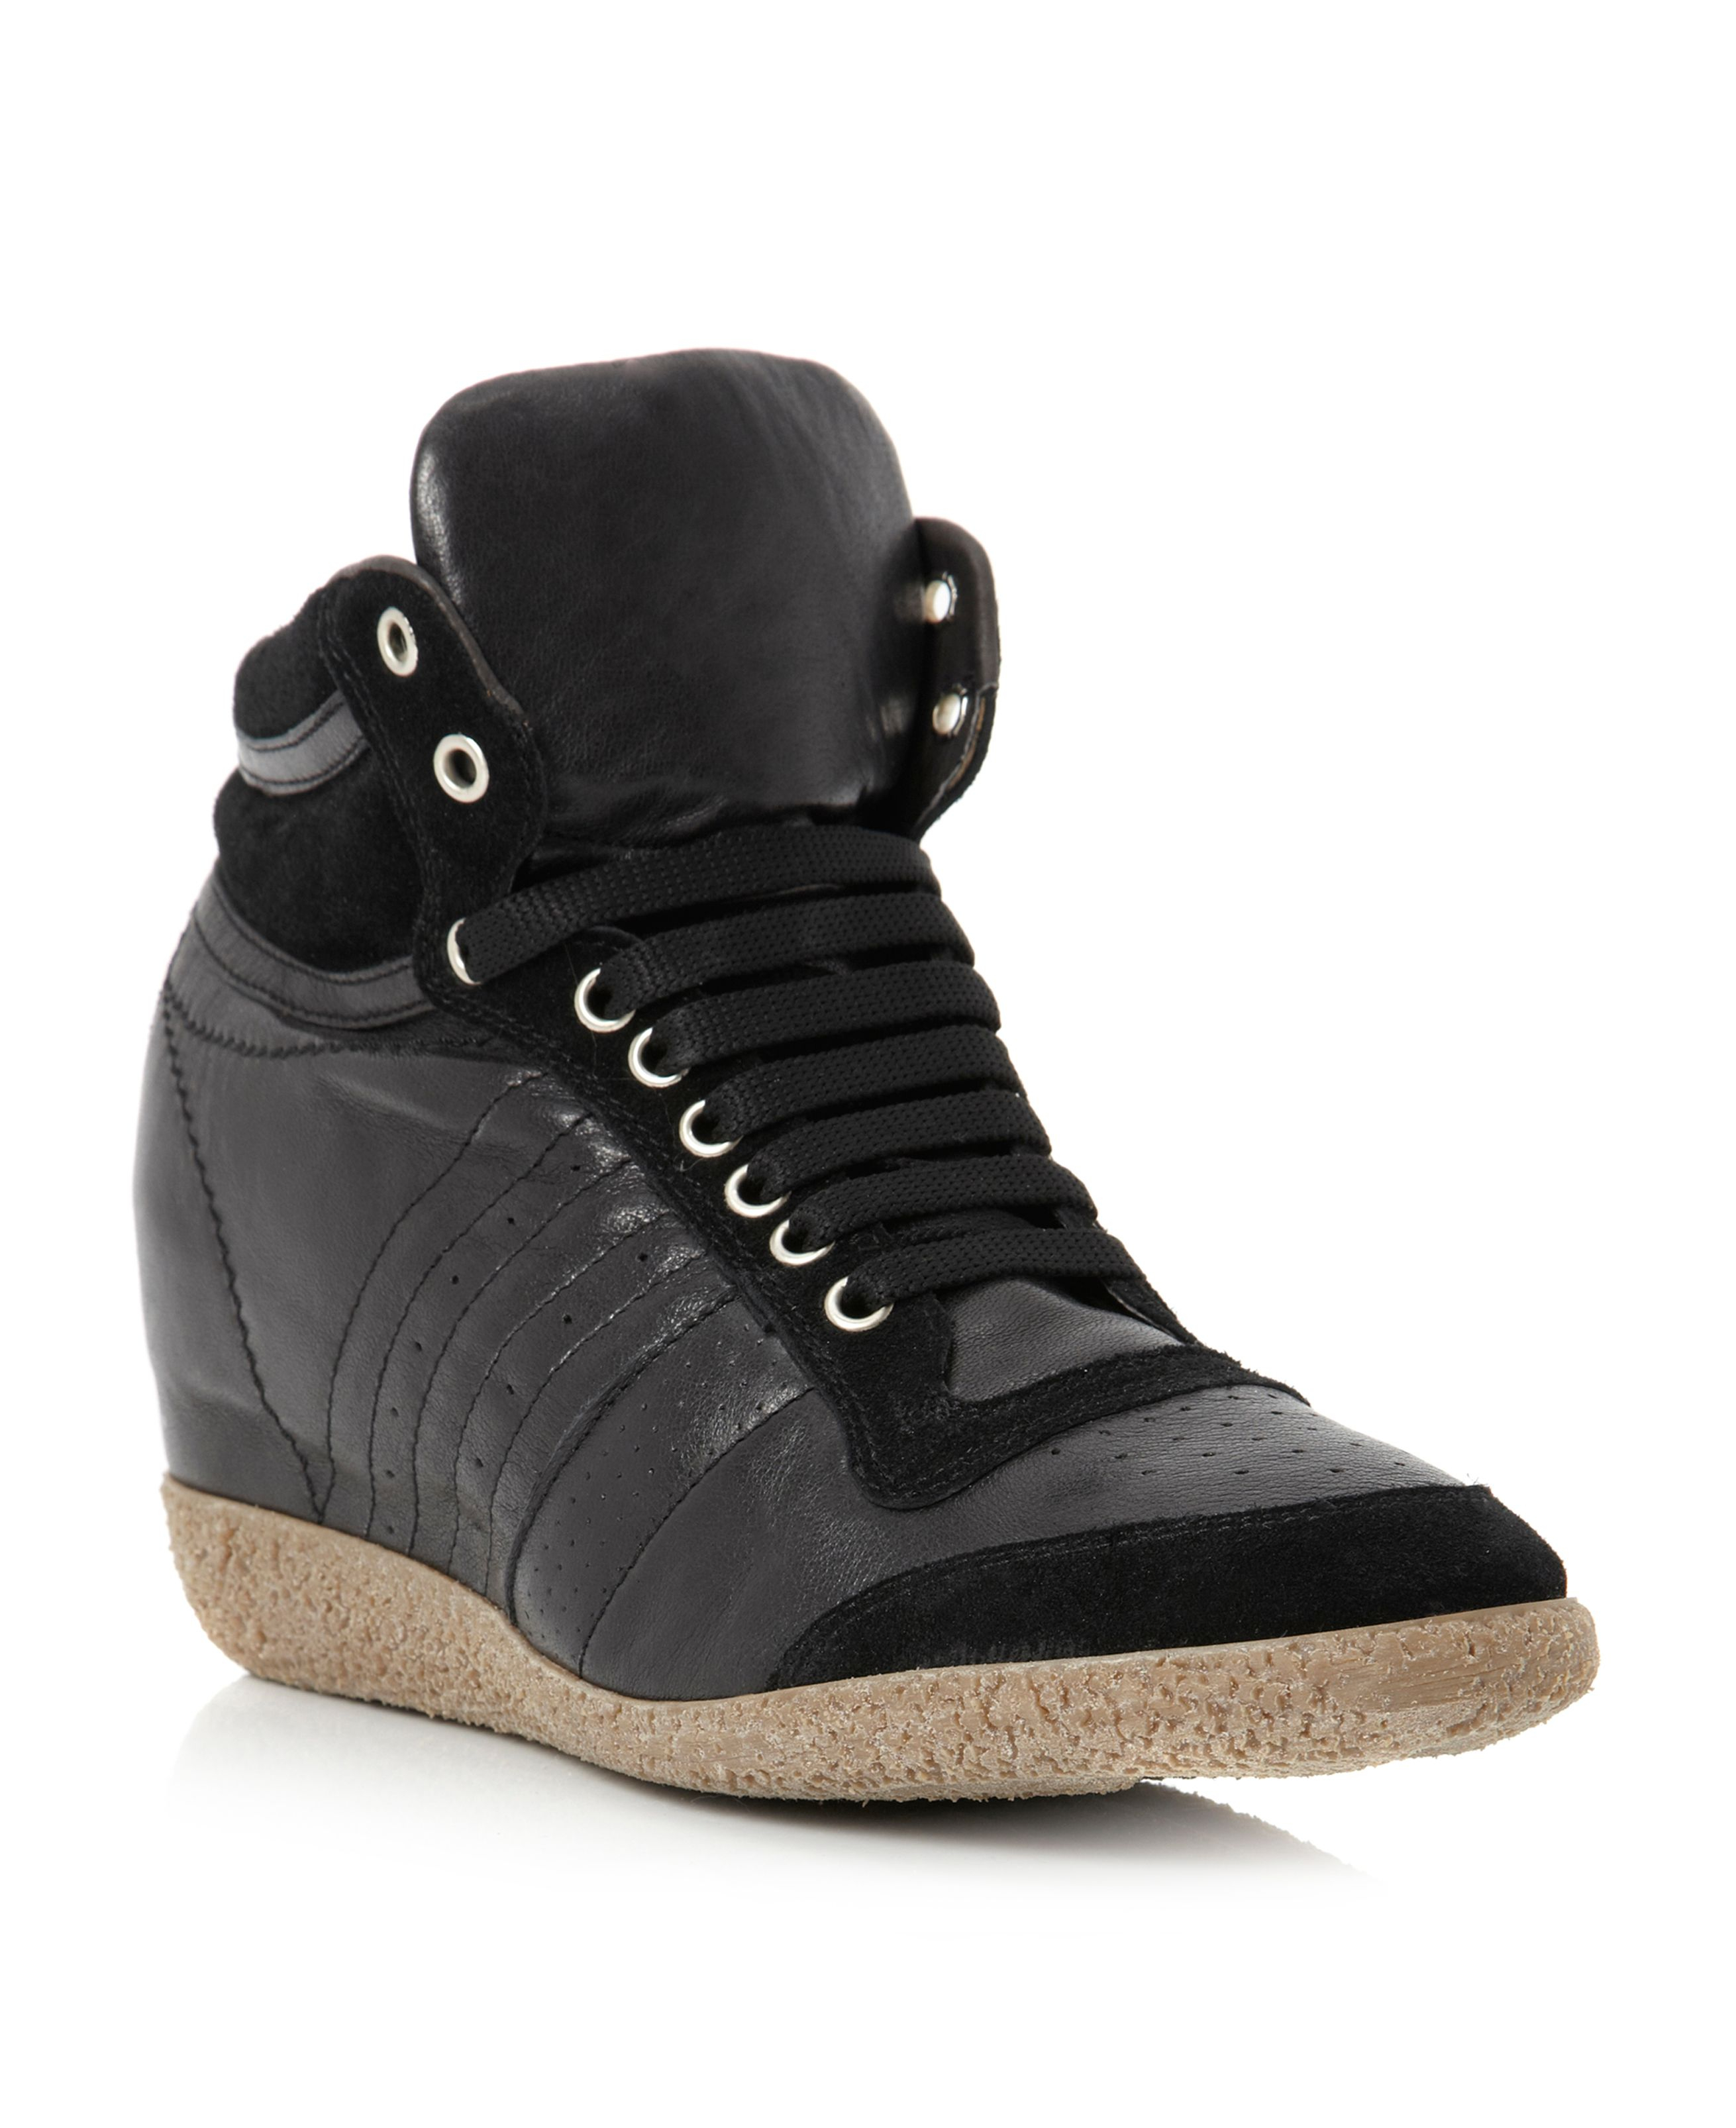 Pied A Terre Pagnol Lace Up Wedge Trainer Shoes In Black